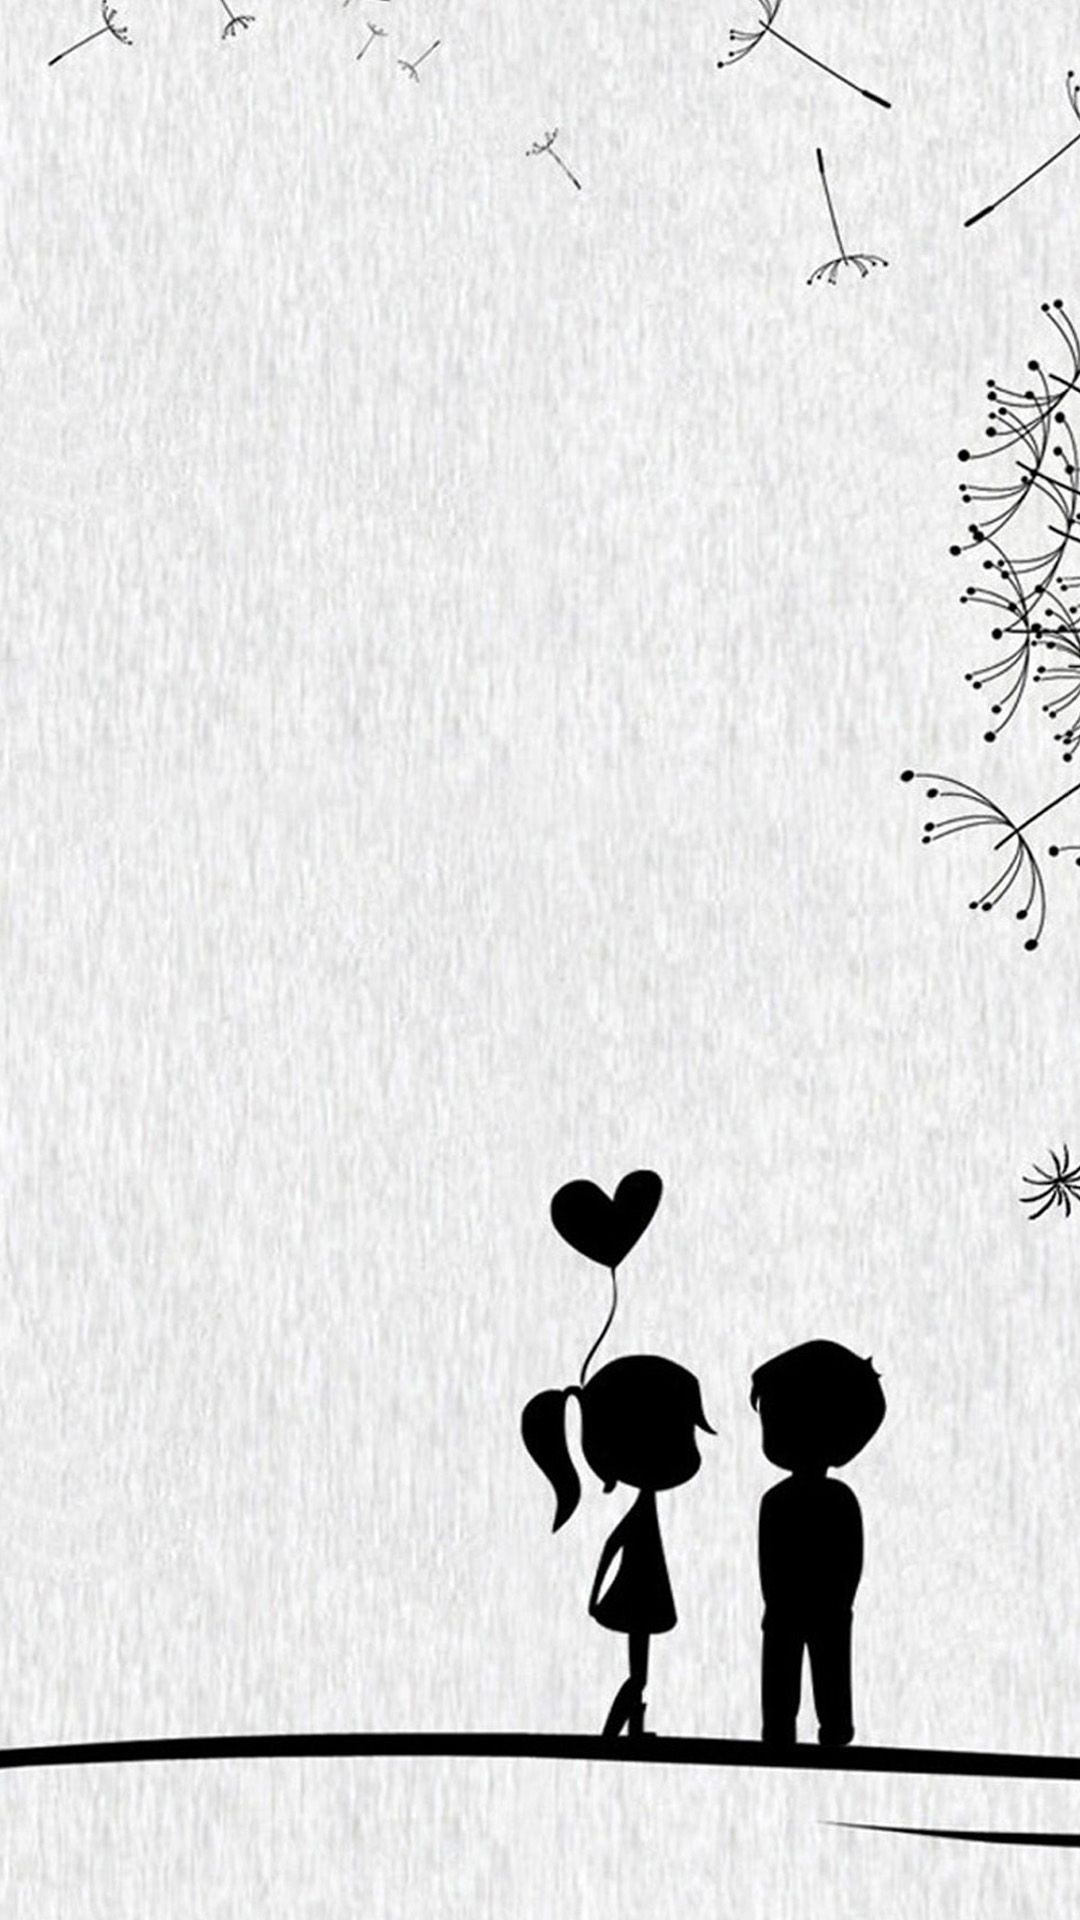 Cute Sweet Love Little Couple The Season Of Tap To See More Valentines IPhone Android Wallpapers Backgrounds Fondos